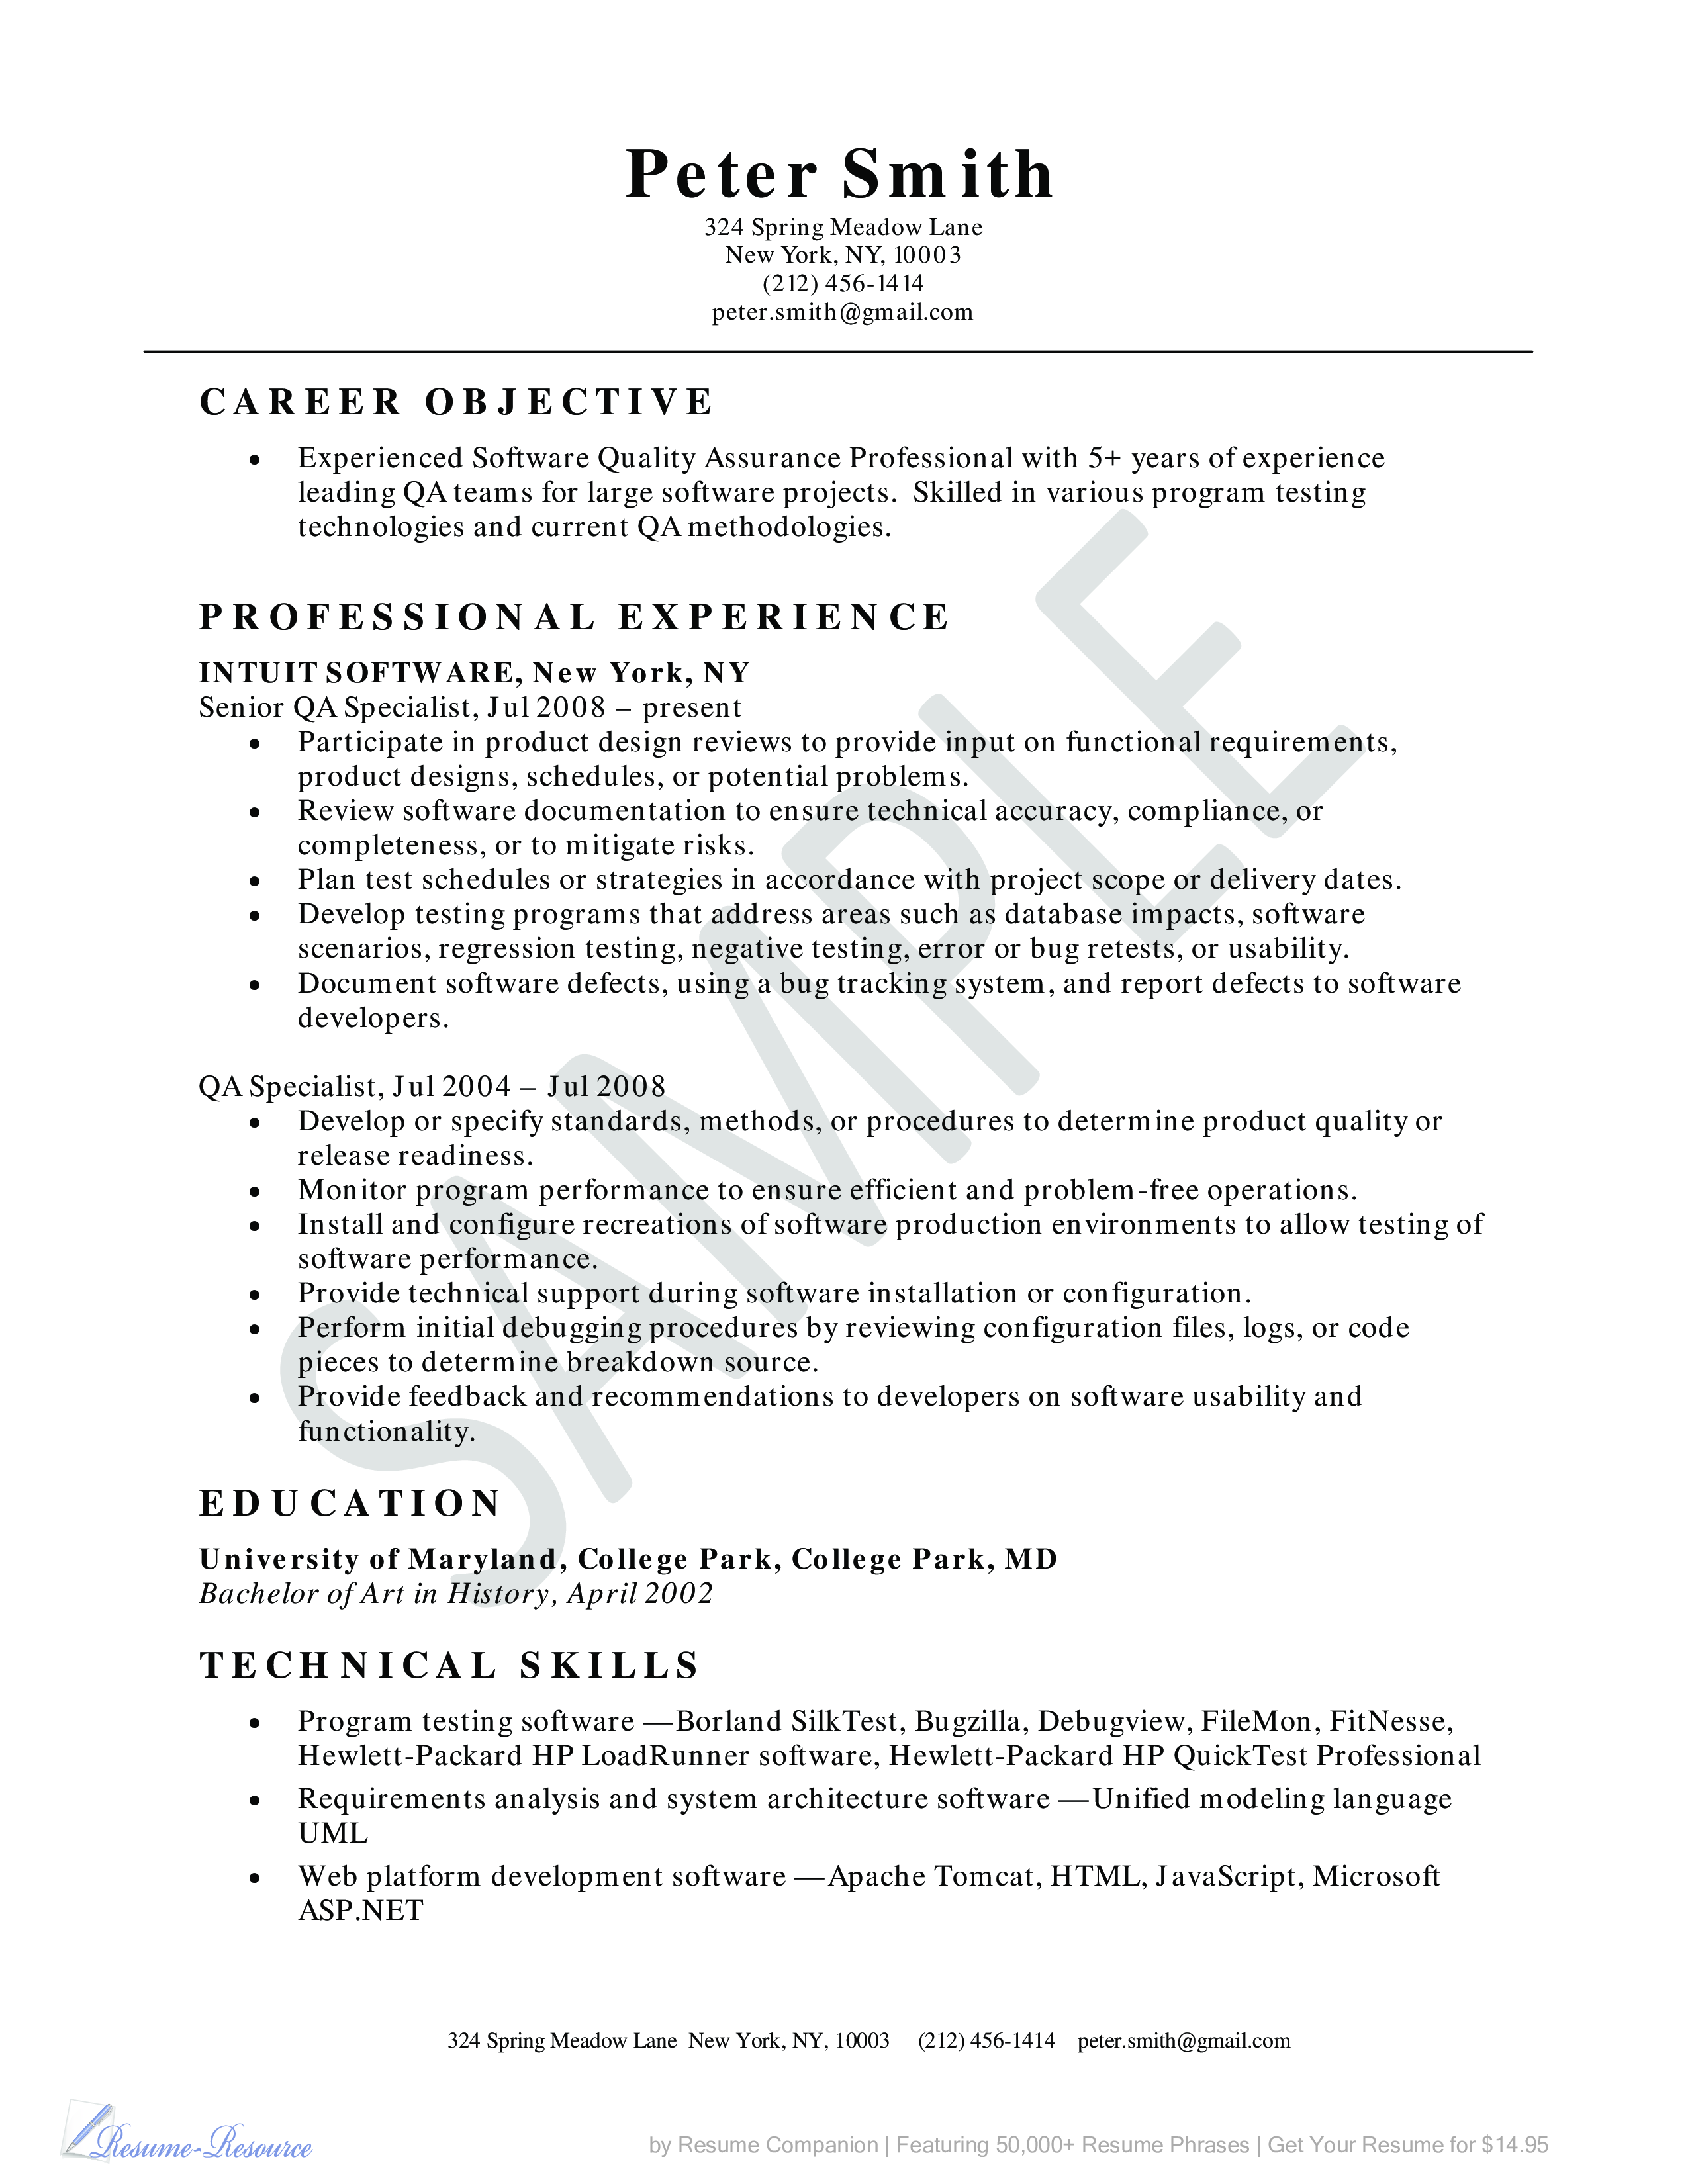 Quality Assurance Resume Example | Templates at ...